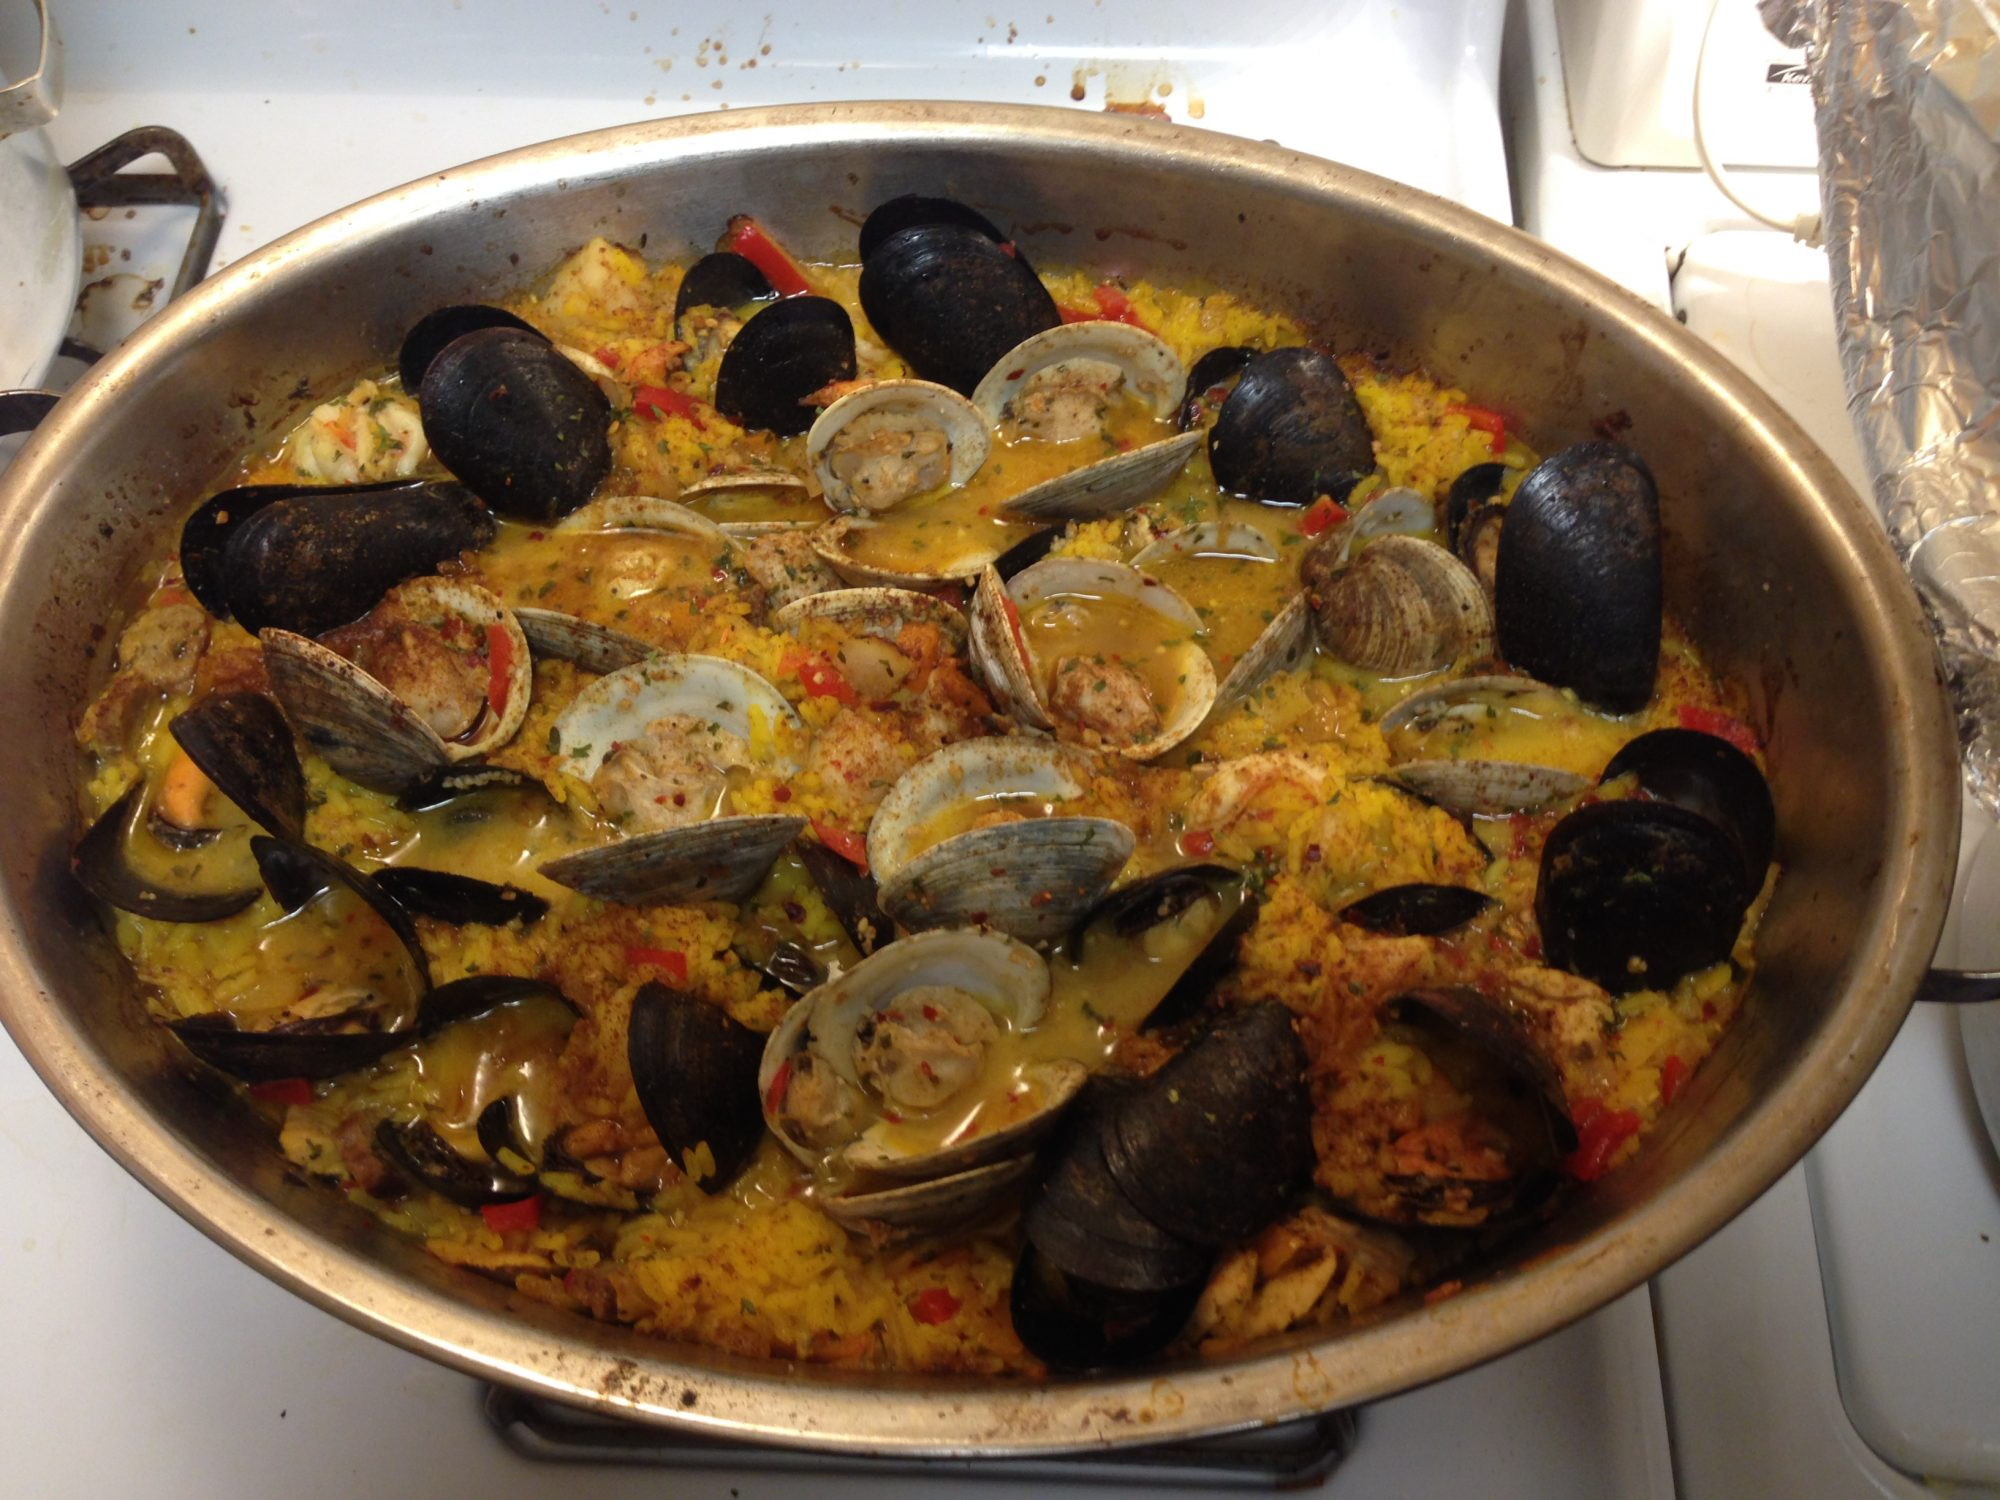 1127727-Authentic-Paella-Valenciana-photo-by-LEONLASS.jpg